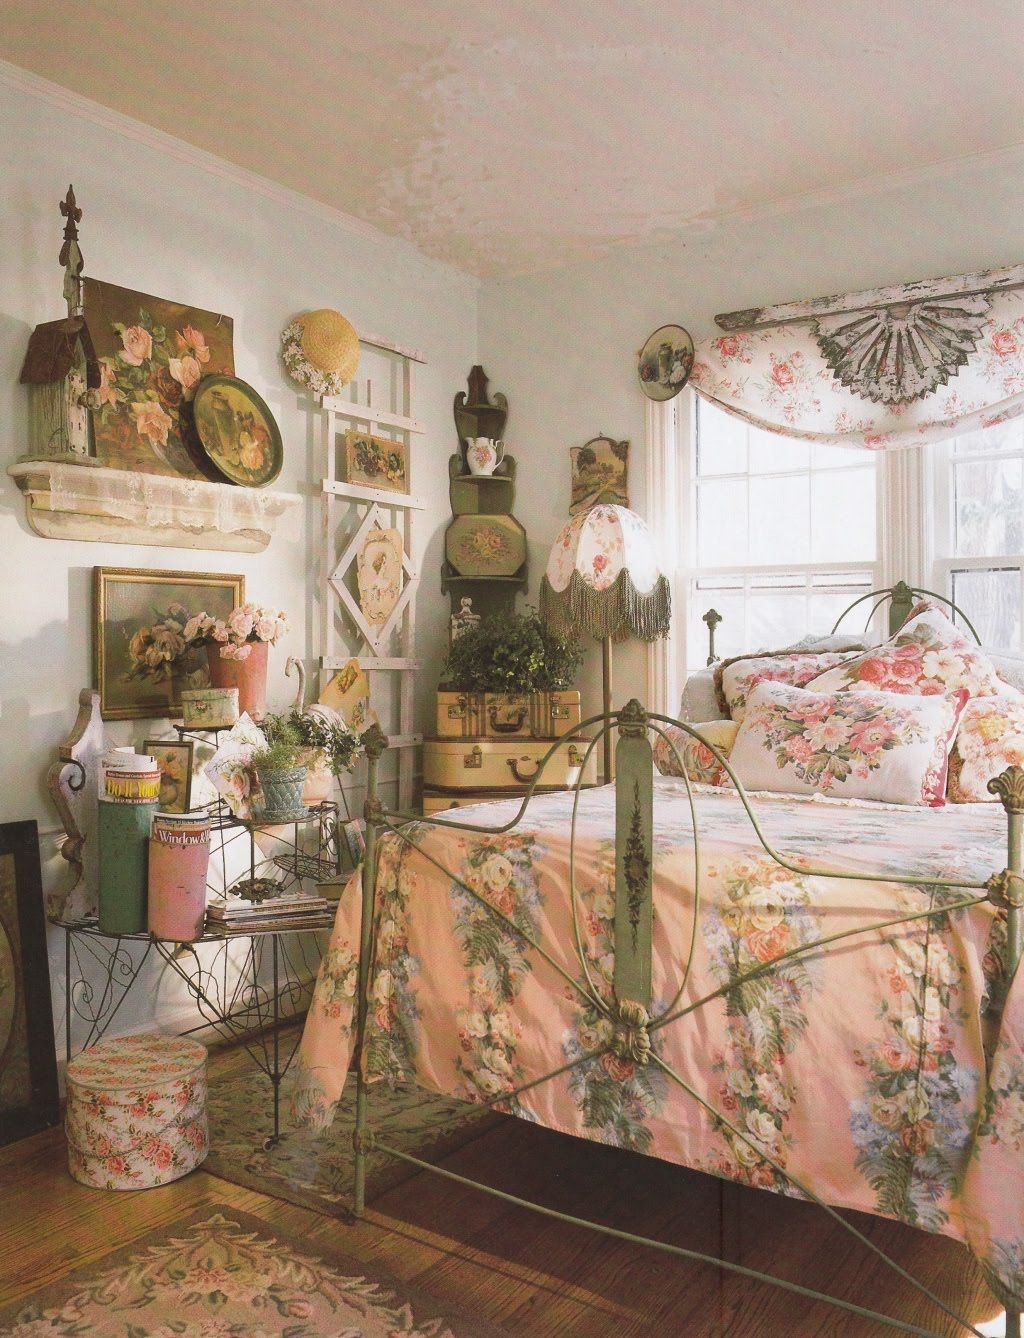 Bedroom, Bedroom Interior Decorating Idea In Cottage Style With Graceful  Natural Colors Tremendous : Vintage Bedroom Design Ideas Pictures